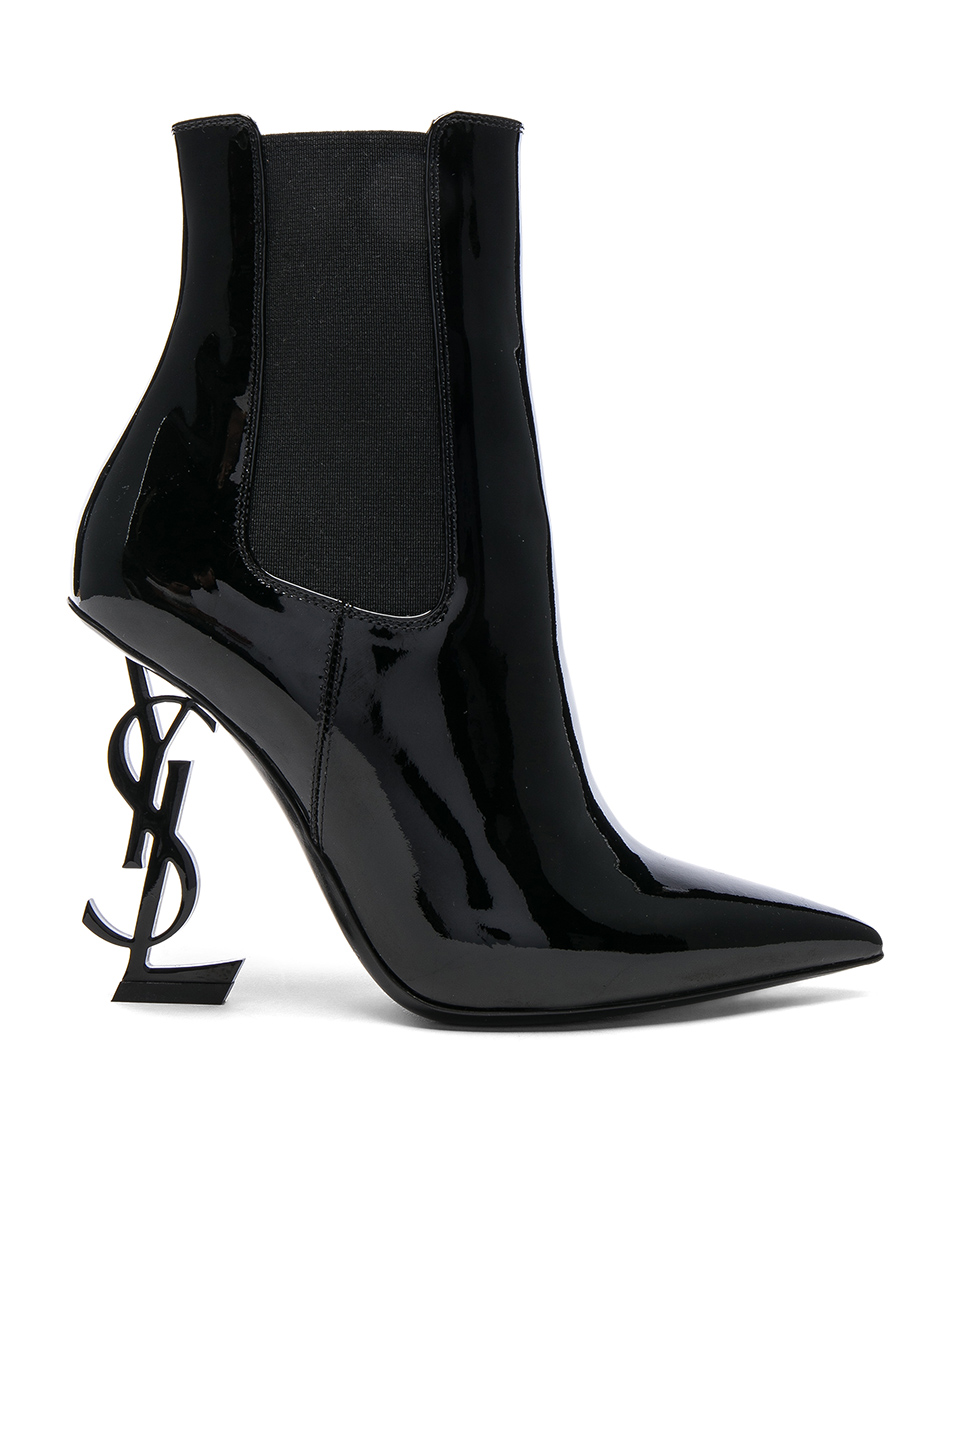 Monogrammed Patent Leather Boots by Saint Laurent, available on fwrd.com for $1695 Olivia Culpo Shoes Exact Product